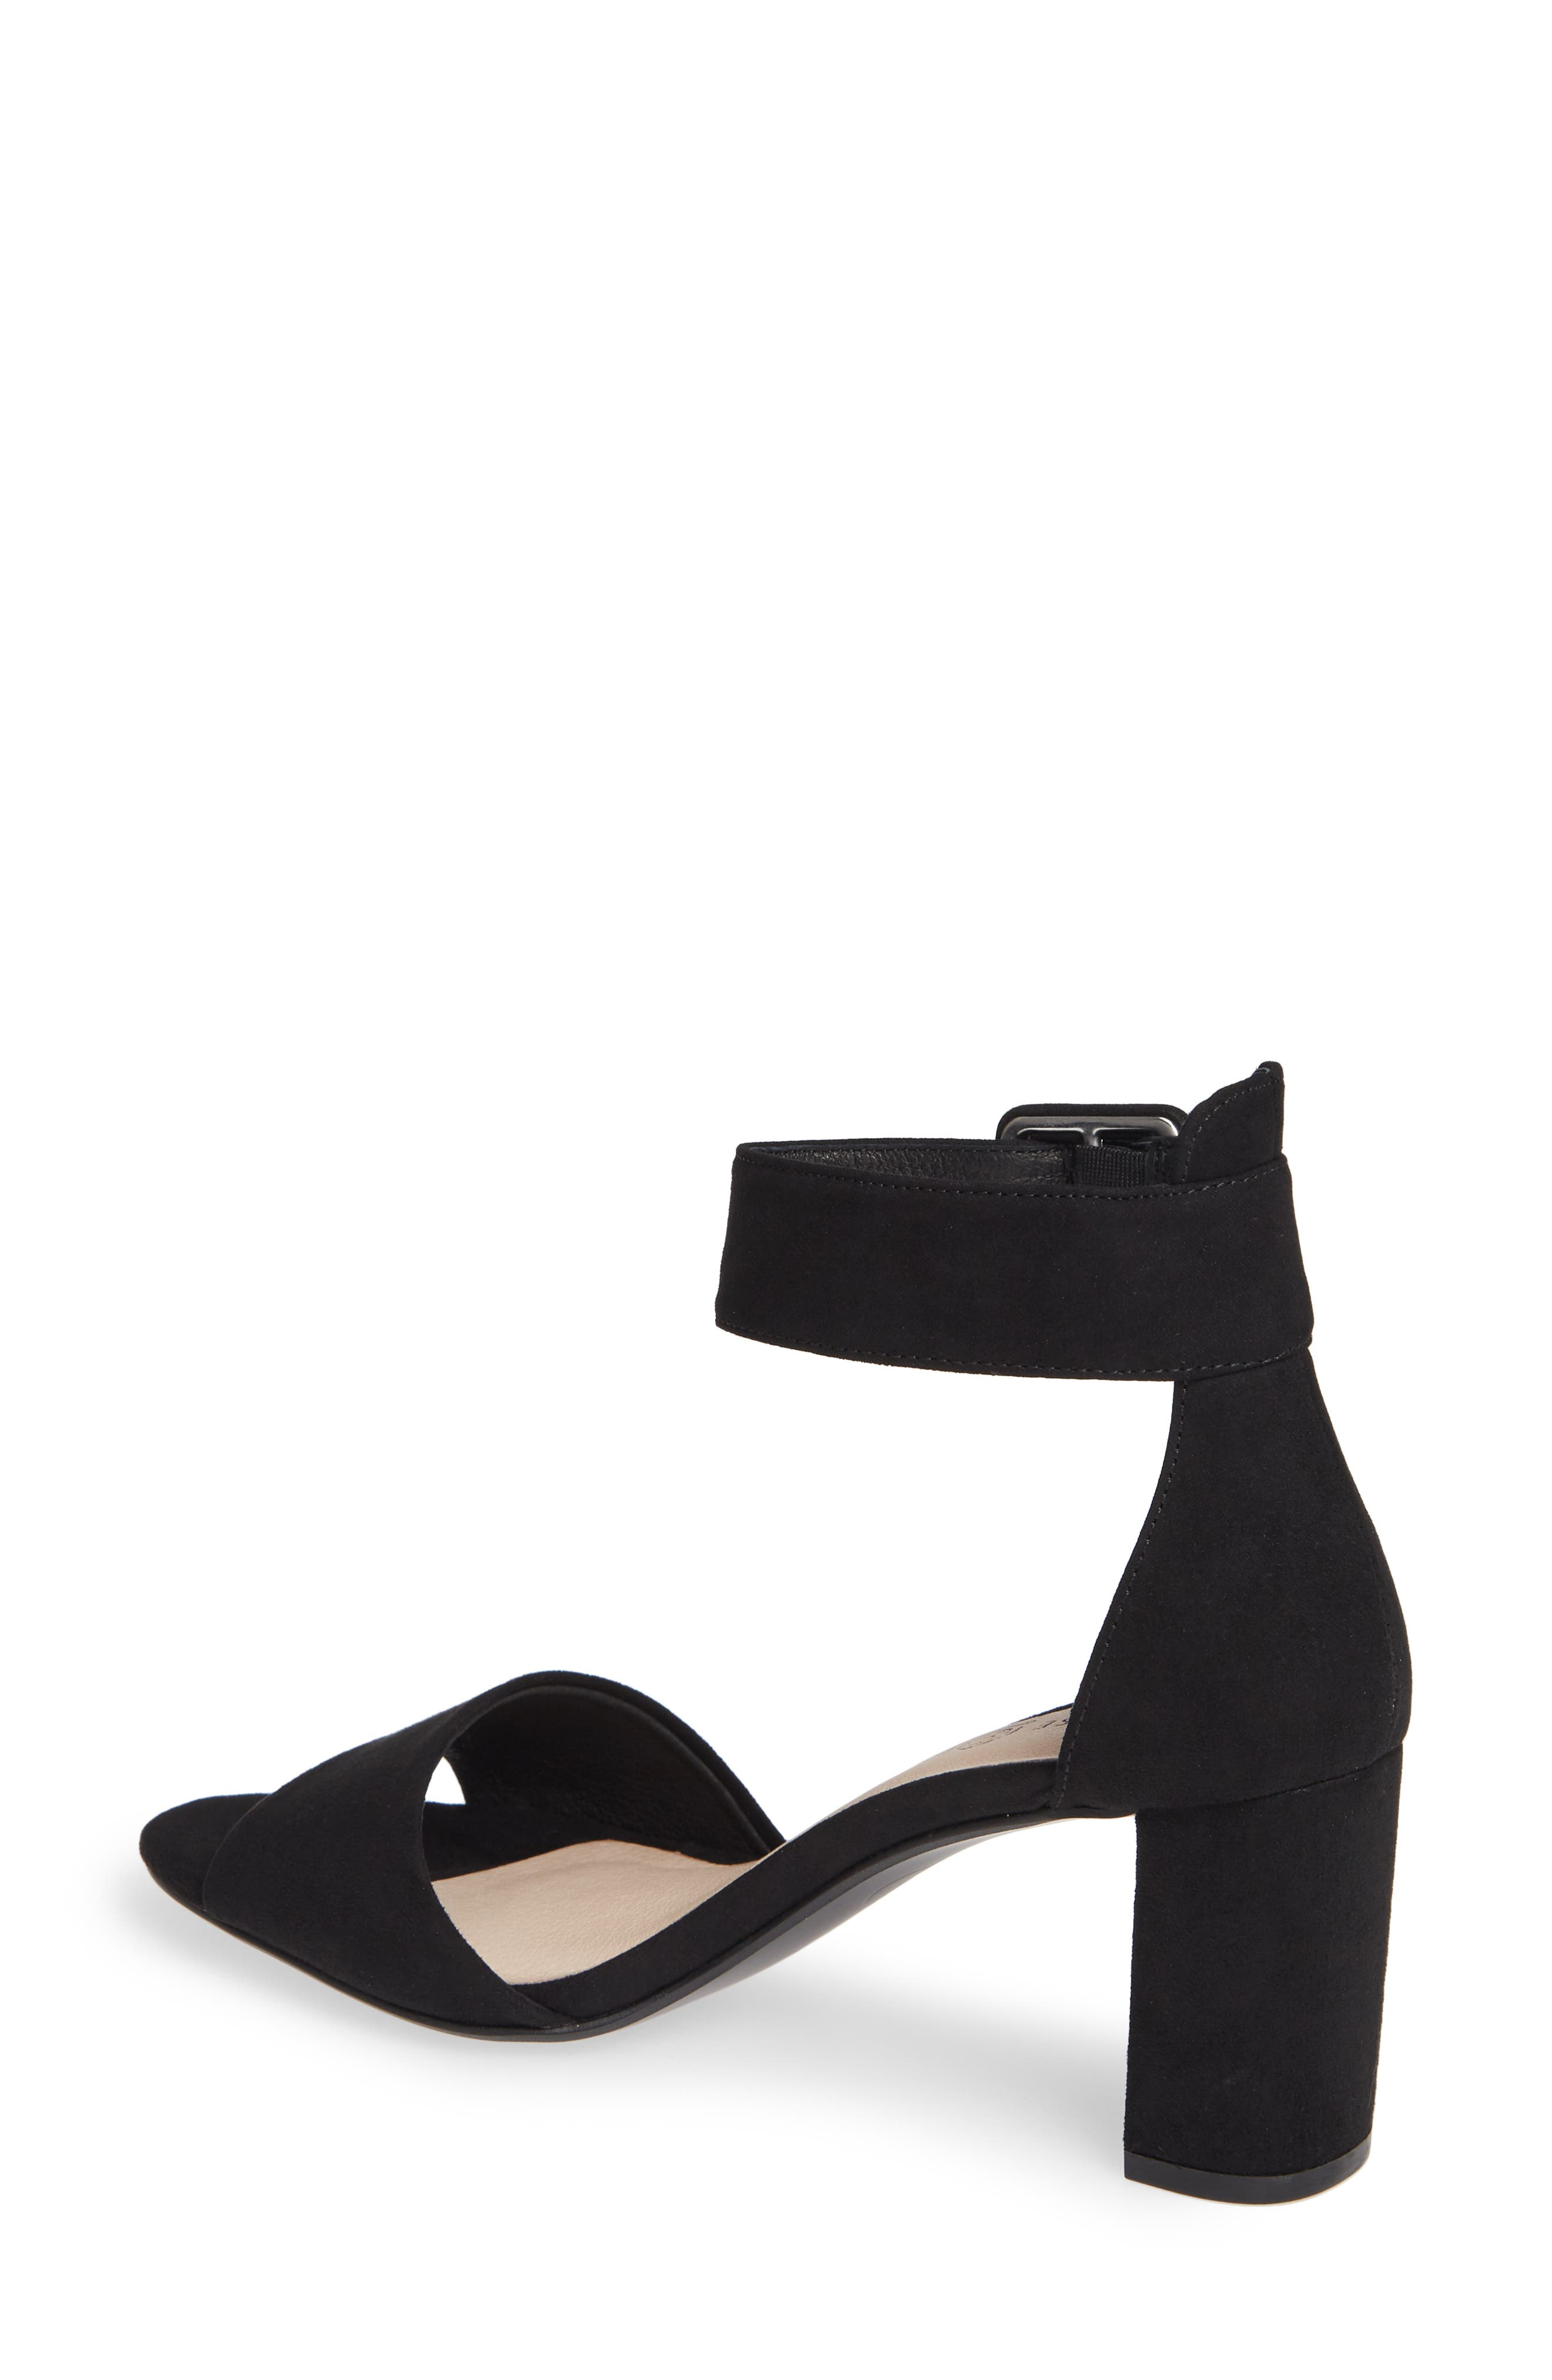 CHINESE LAUNDRY,                             Rumor Sandal,                             Alternate thumbnail 2, color,                             BLACK SUEDE